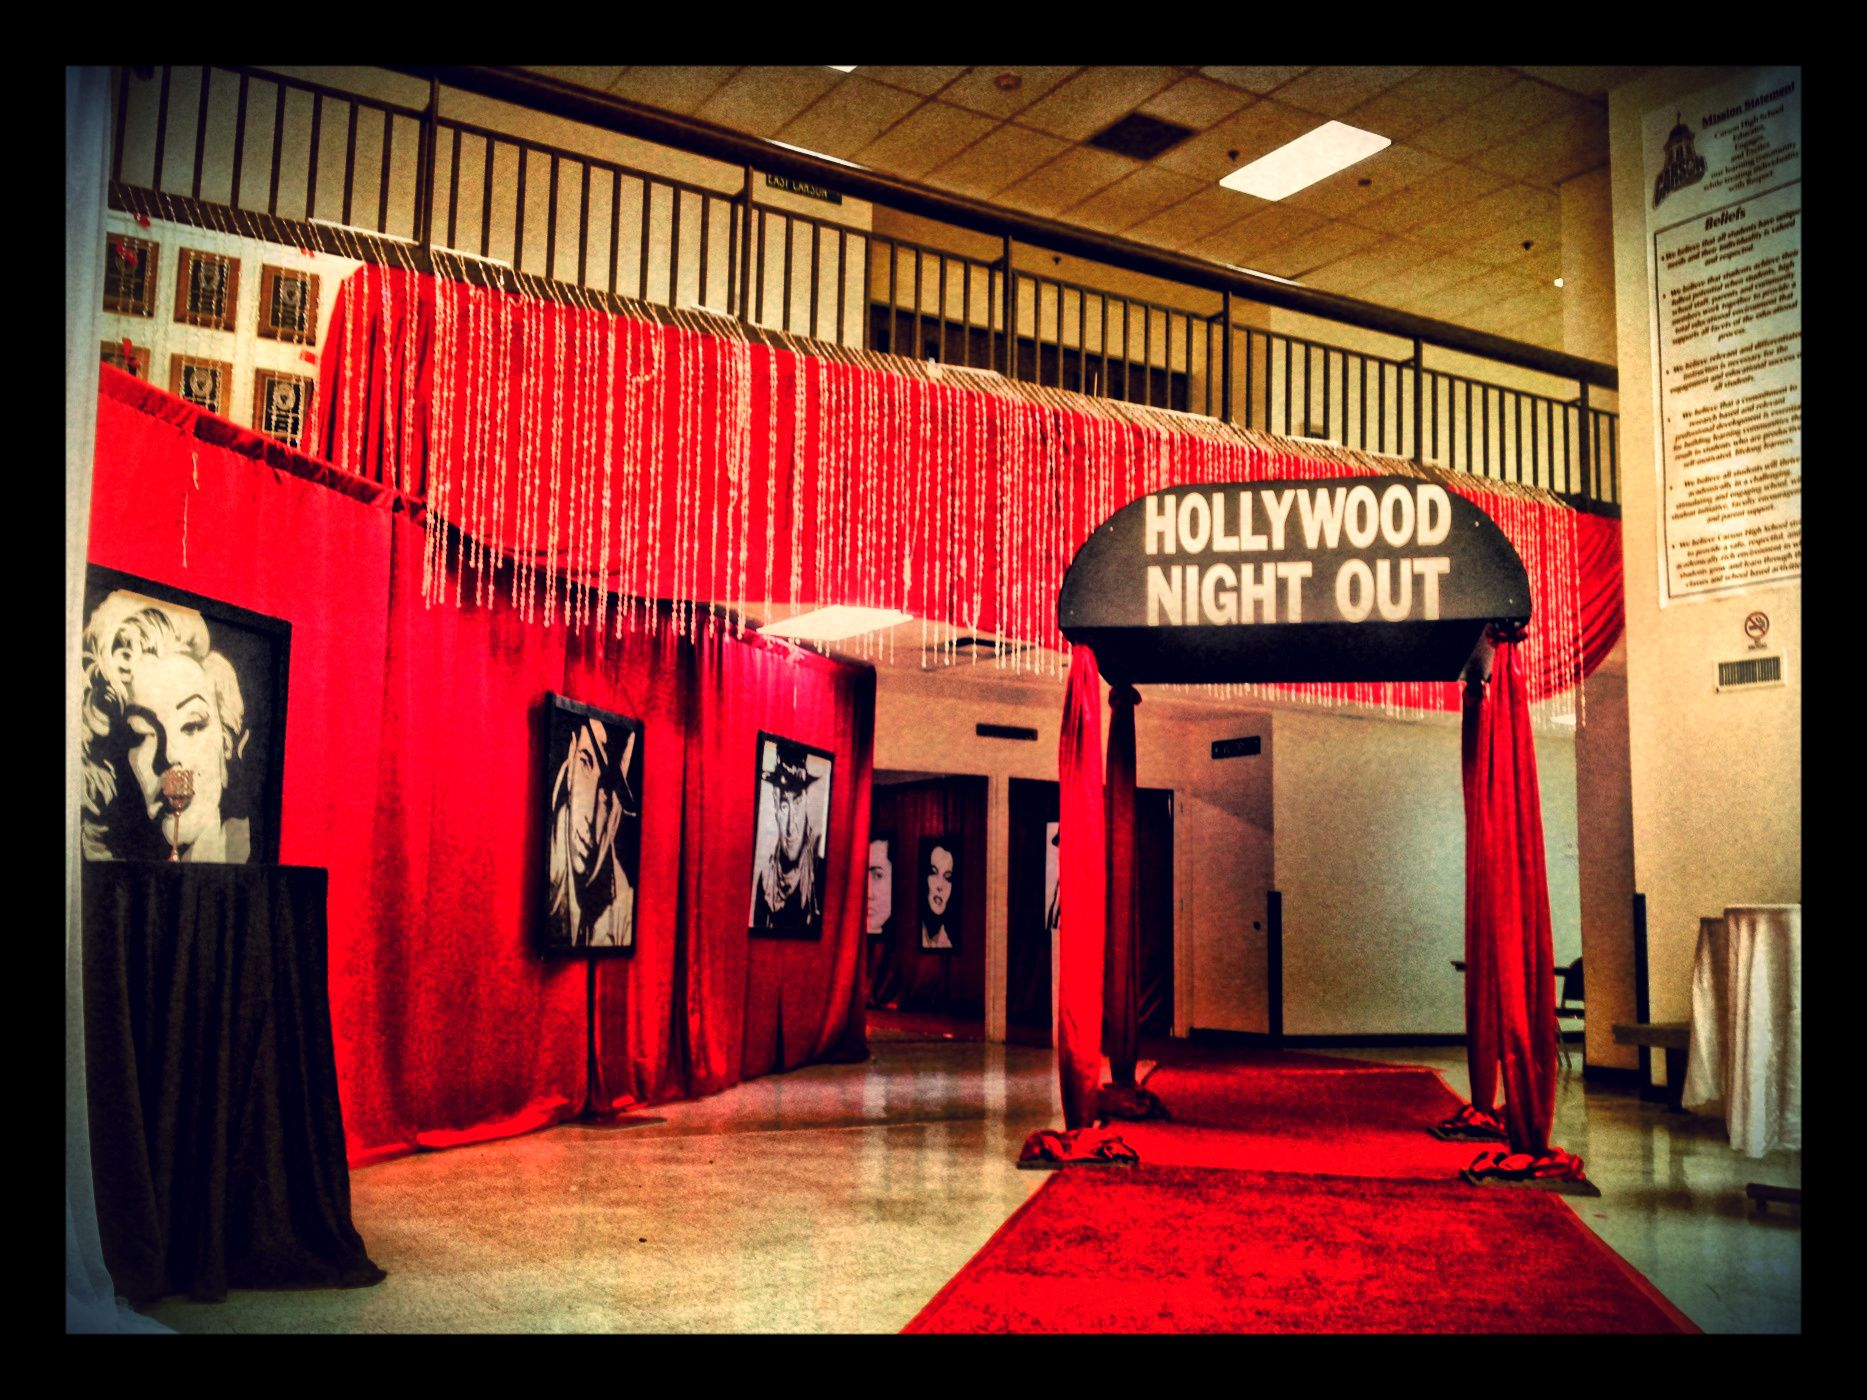 An Extravagant Hollywood Theme Was Used For Carson Citys Prom Night As They Walked The Red Carpet And Danced Away In Style